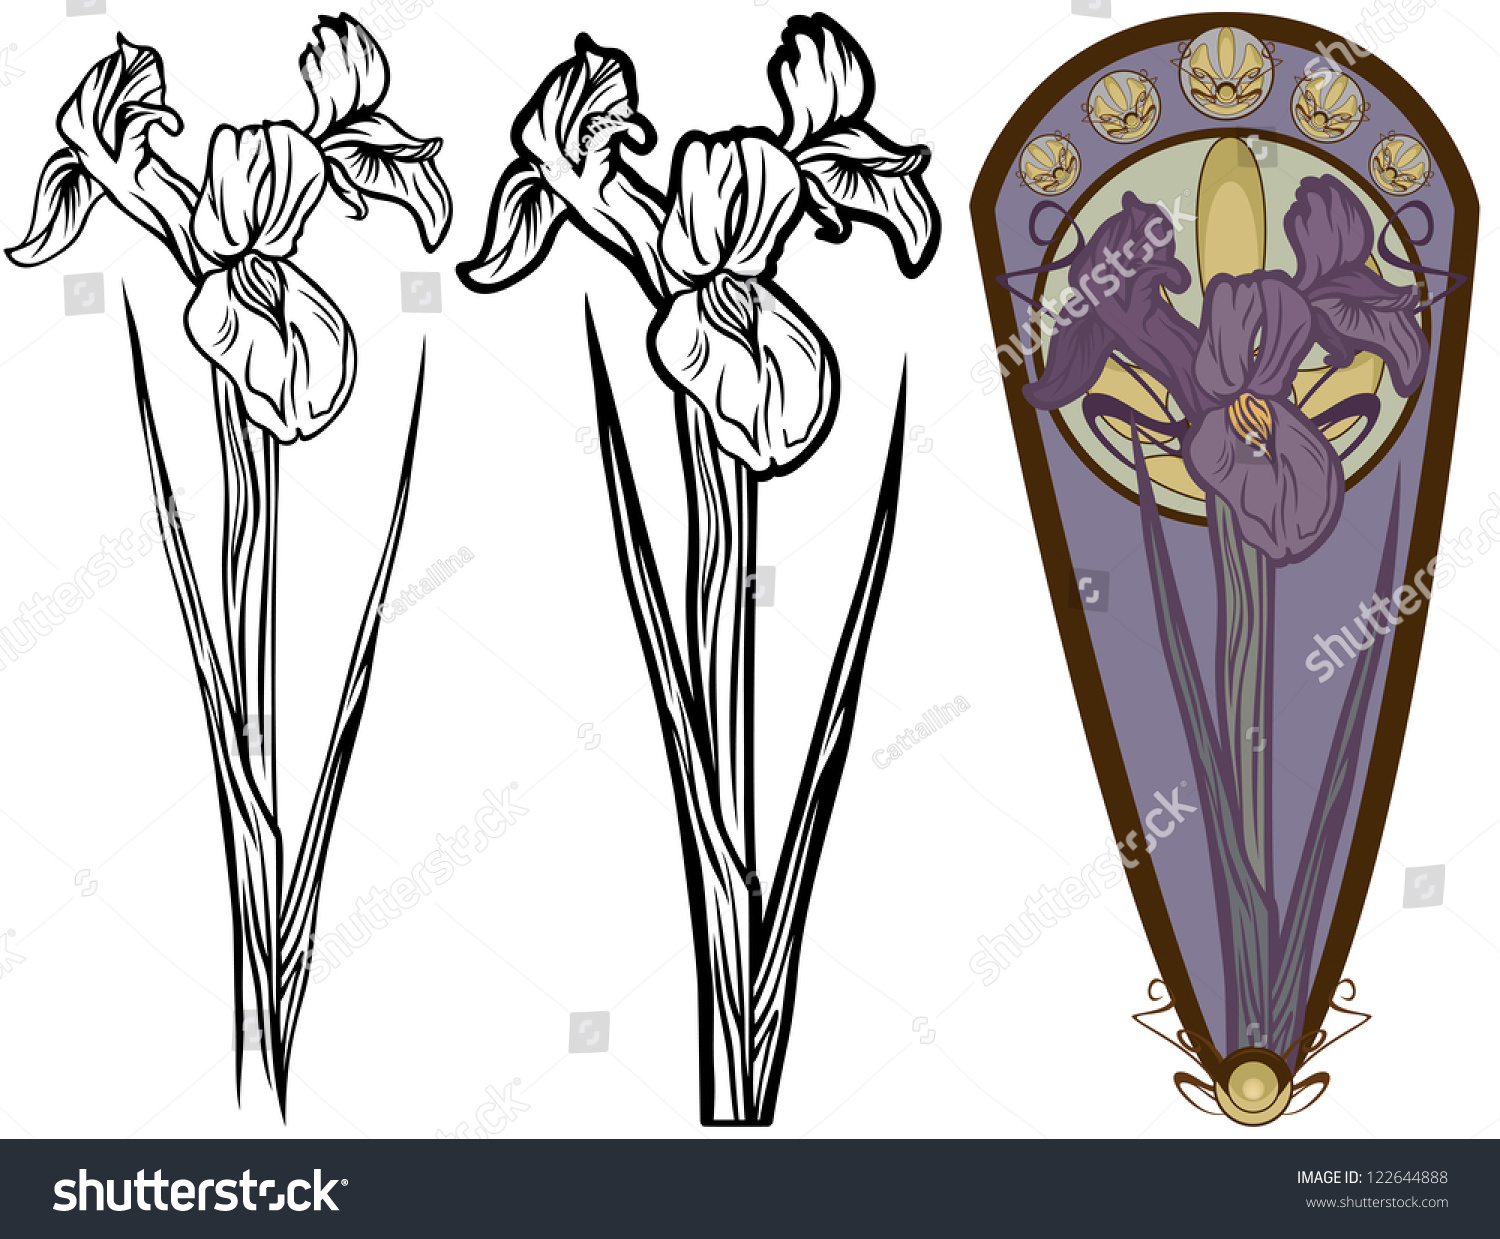 Iris flower illustration black and white and color versions vector